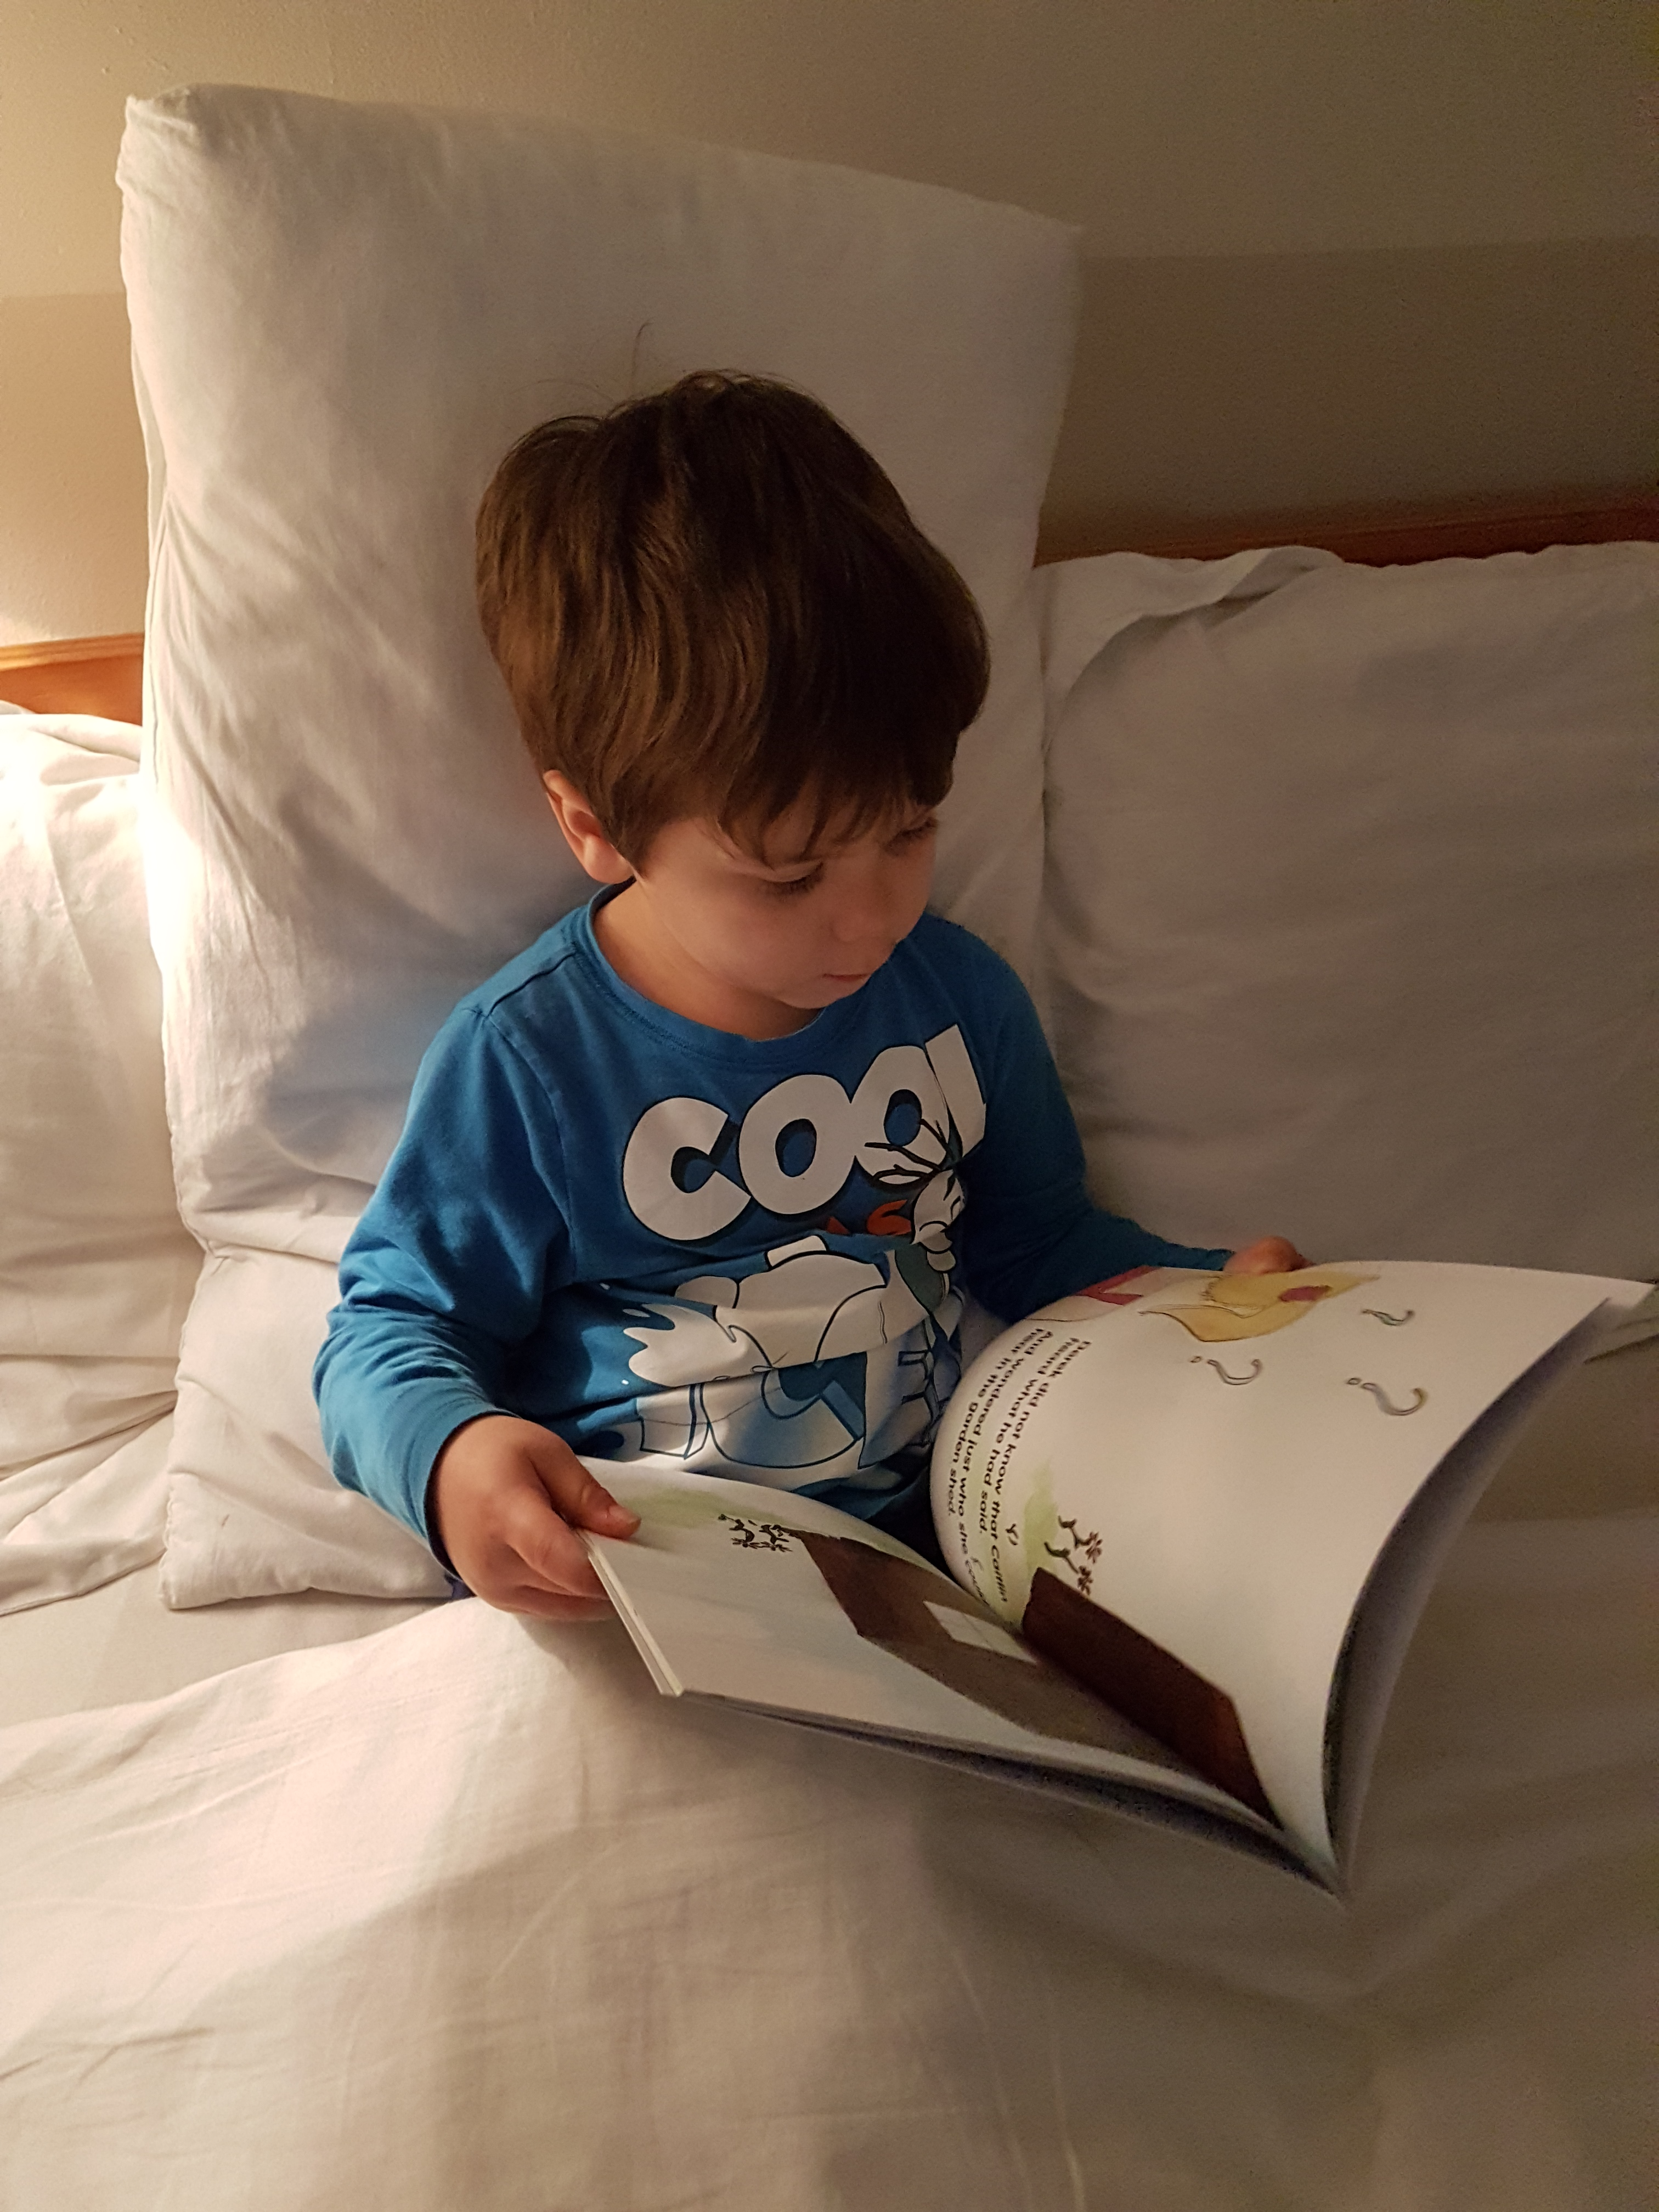 cody reading a book